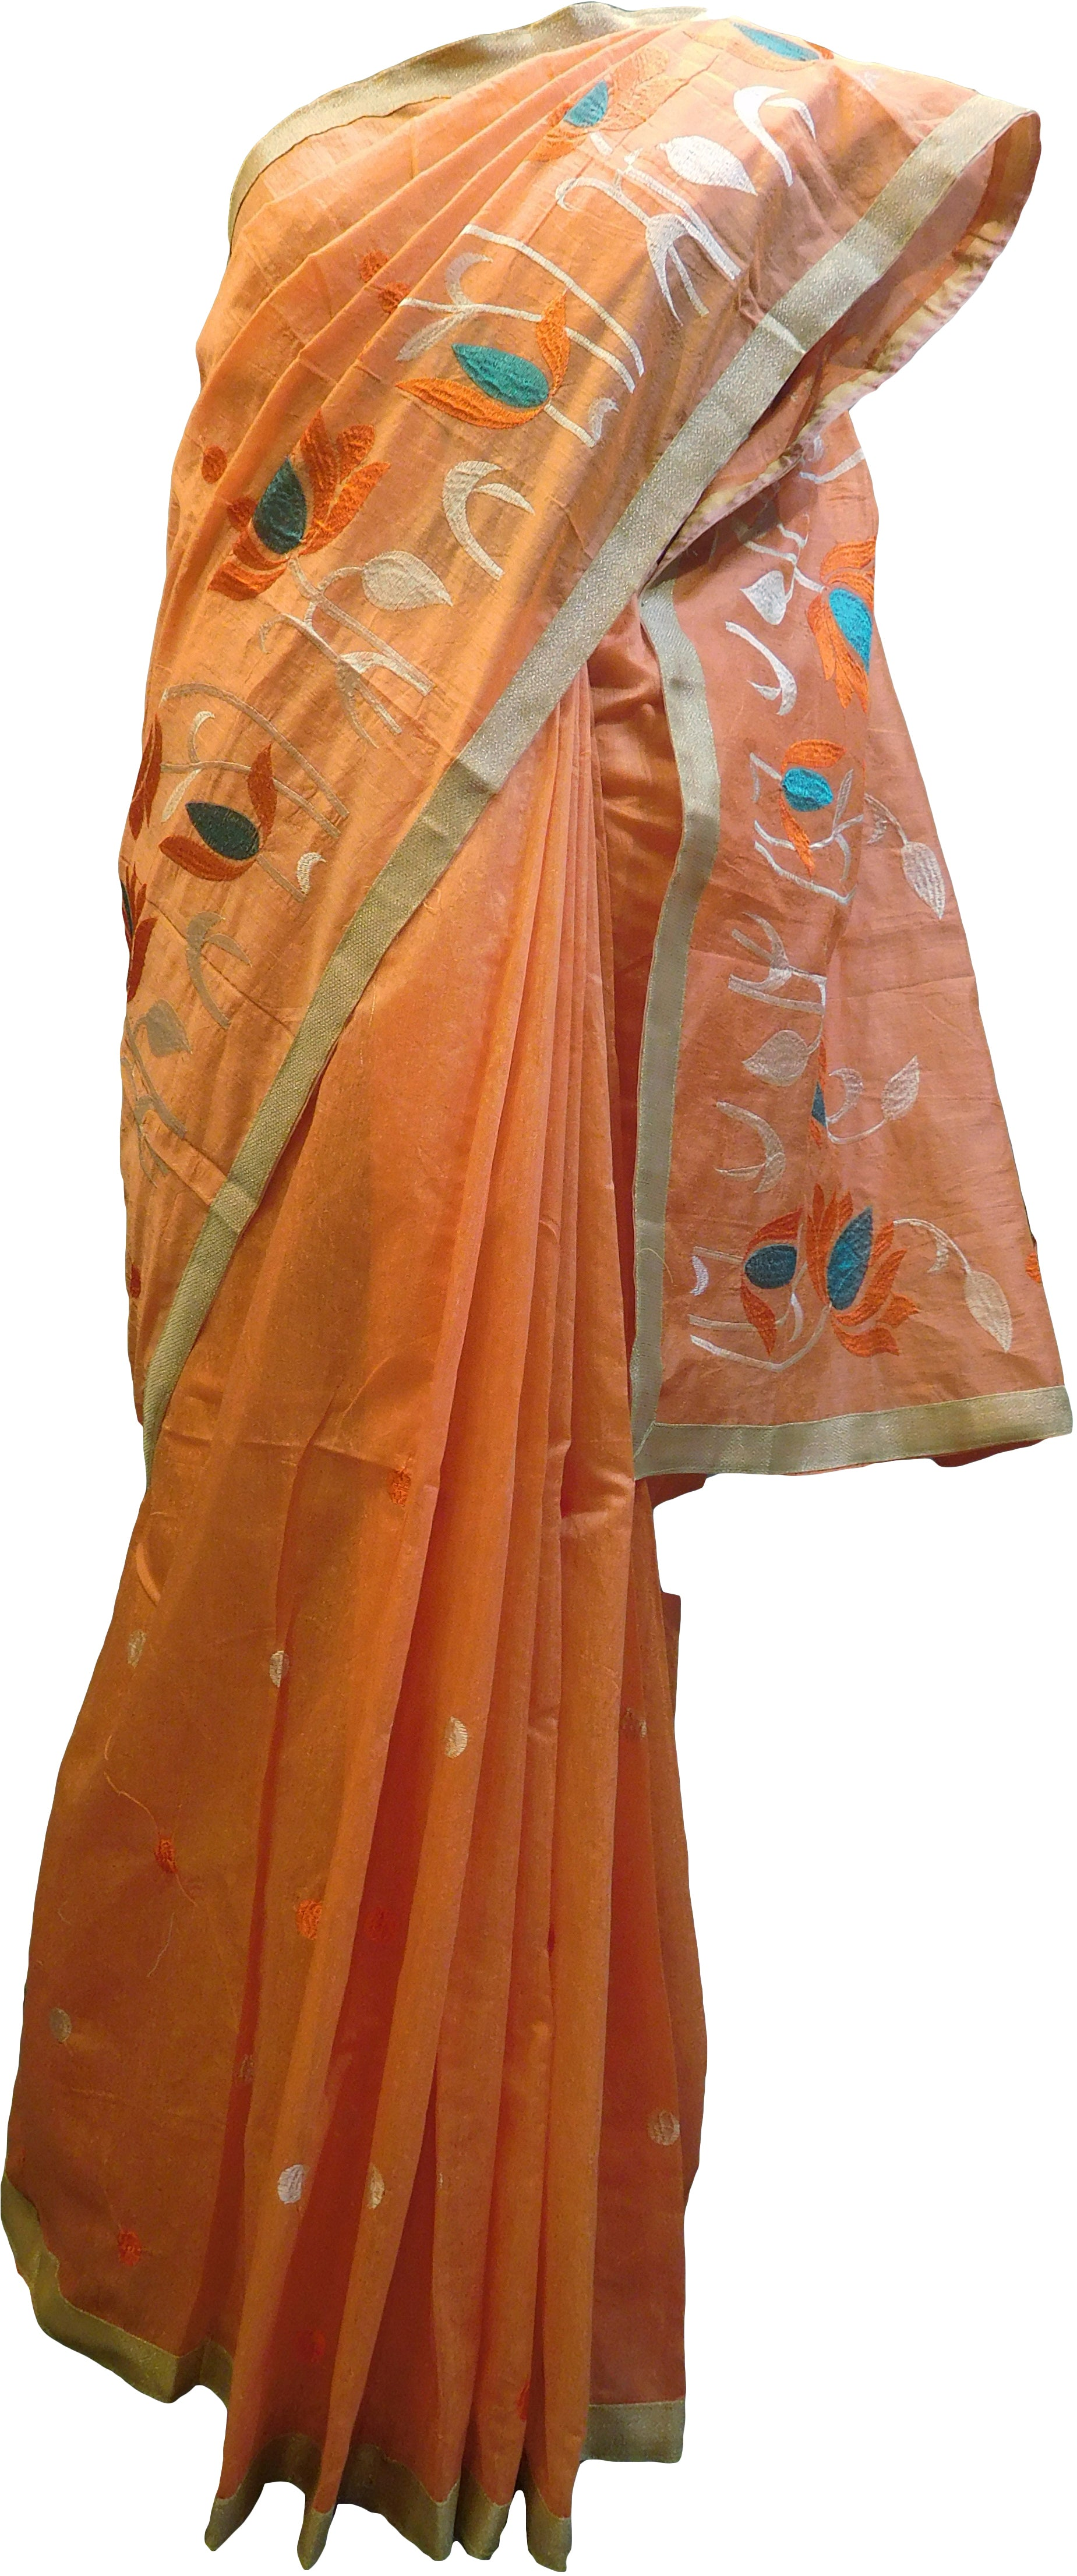 SMSAREE Peach Designer Wedding Partywear Cotton (Chanderi) Thread & Zari Hand Embroidery Work Bridal Saree Sari With Blouse Piece E967